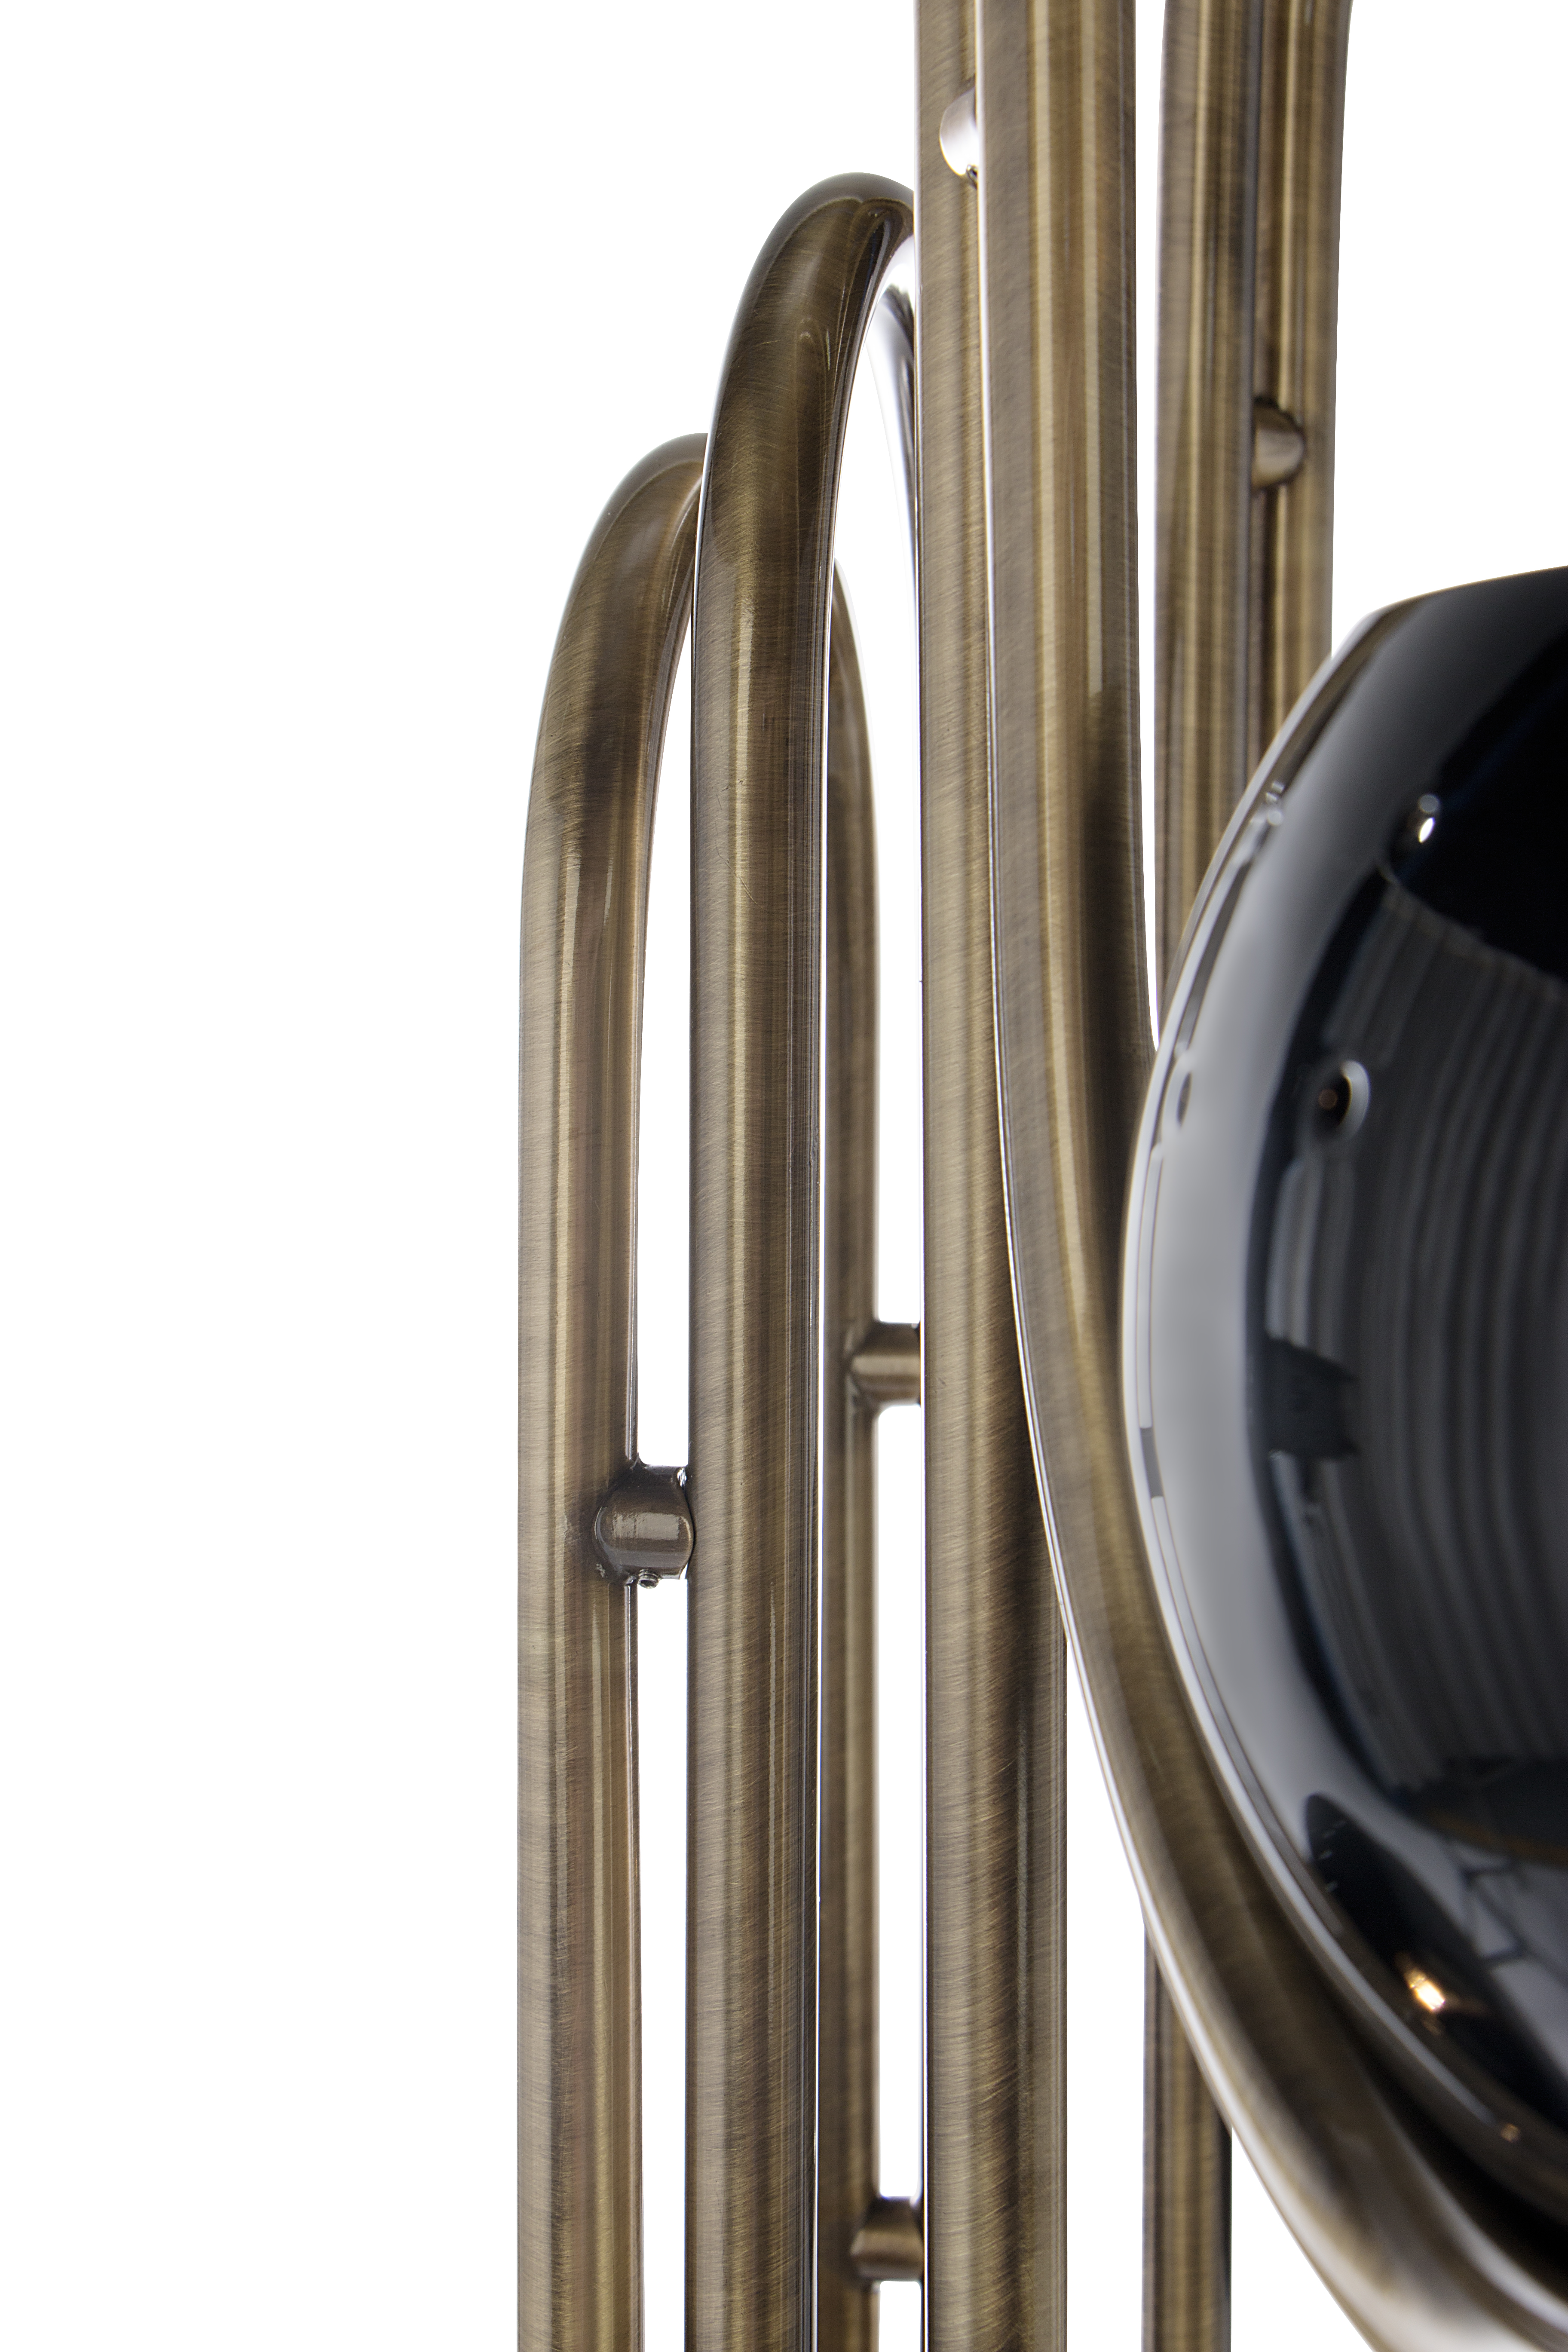 Bright Ideas Modern Floor Lamp Inspired in The Golden Years of Space 7 modern floor lamp Bright Ideas: Modern Floor Lamp Inspired in The Golden Years of Space Bright Ideas Modern Floor Lamp Inspired in The Golden Years of Space 9